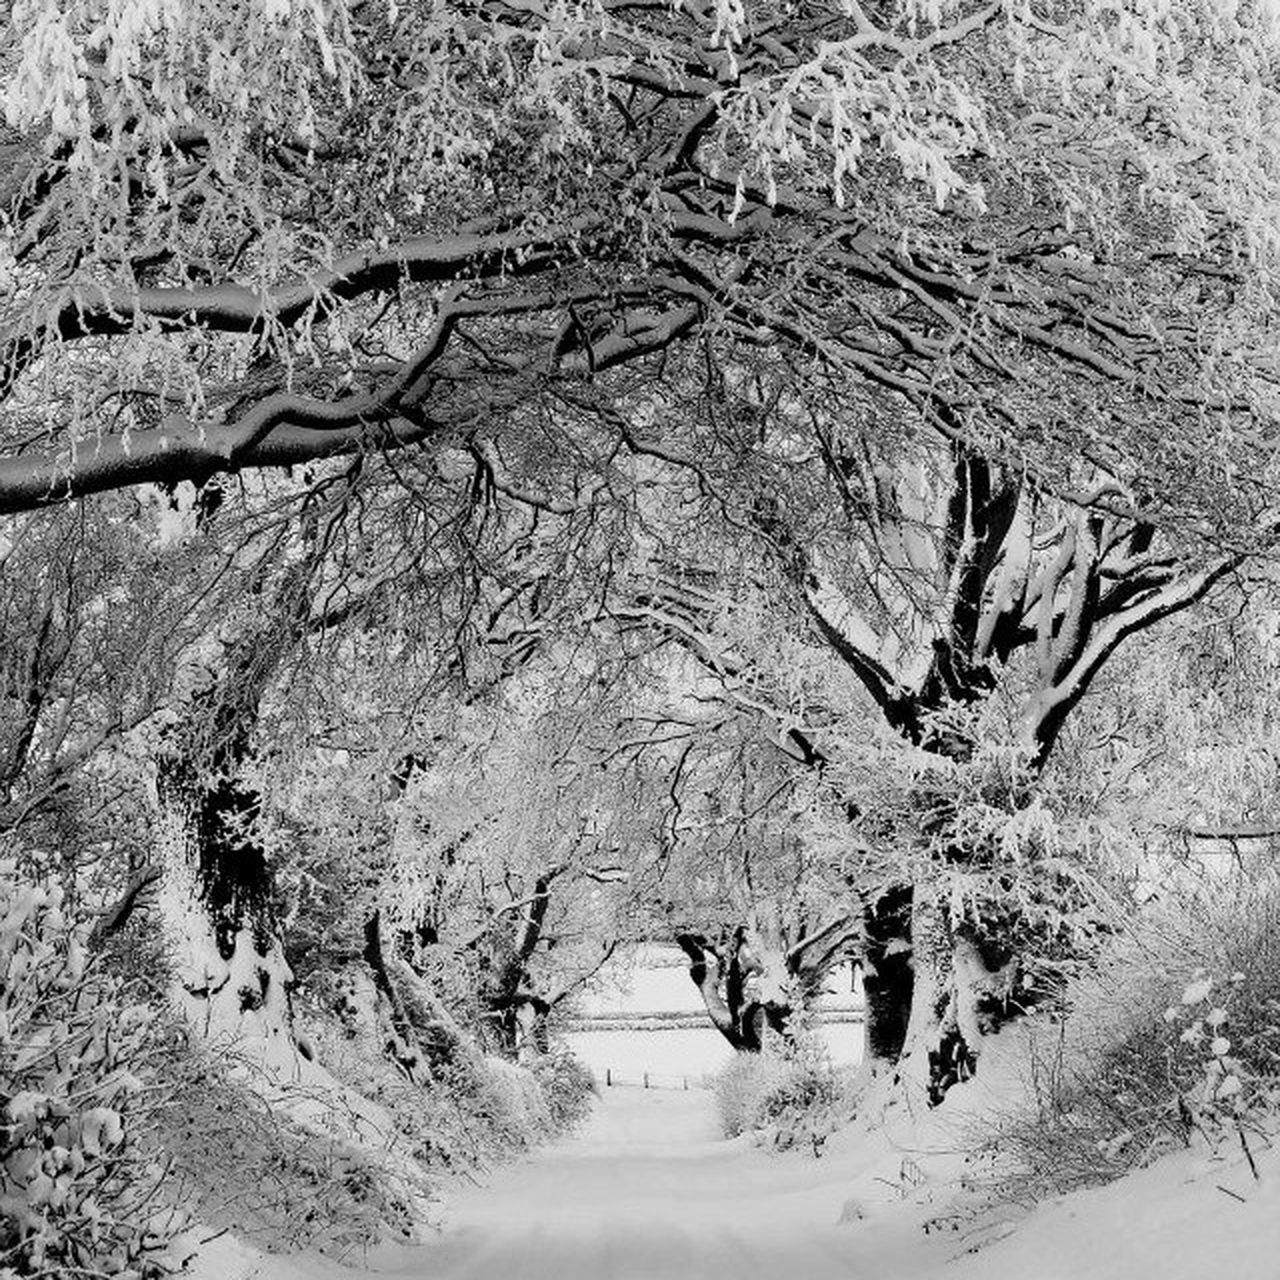 tree, walking, nature, branch, day, bare tree, outdoors, real people, landscape, beauty in nature, road, growth, winter, snow, animal themes